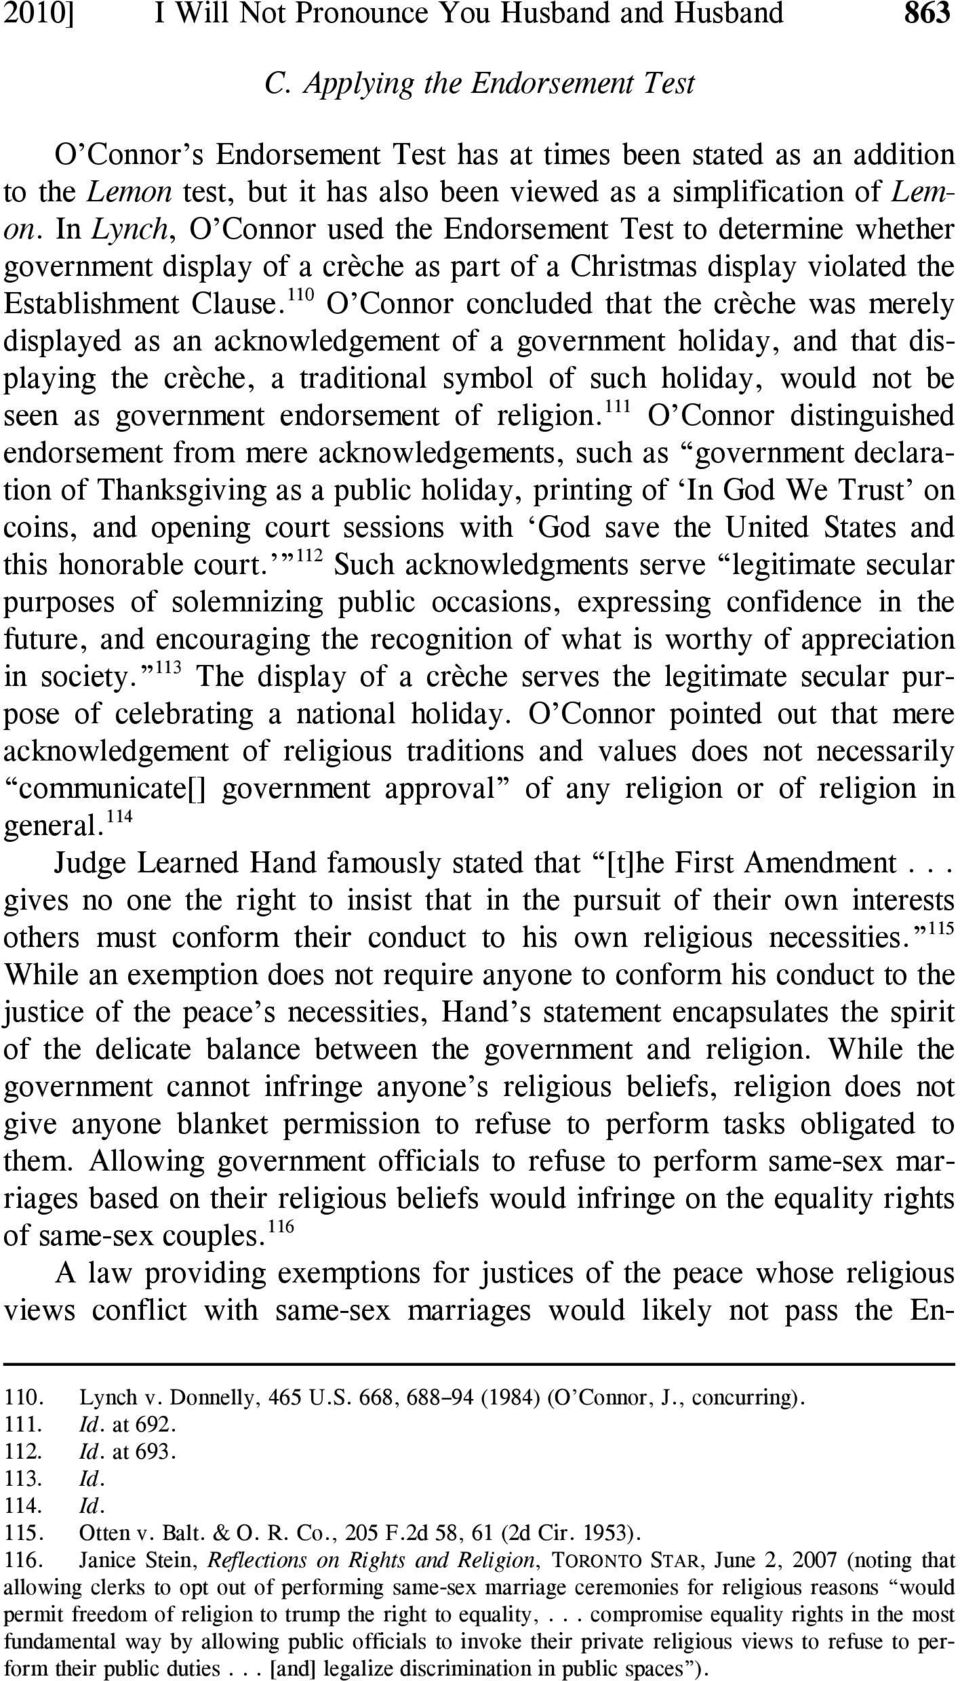 In Lynch, O Connor used the Endorsement Test to determine whether government display of a crèche as part of a Christmas display violated the Establishment Clause.